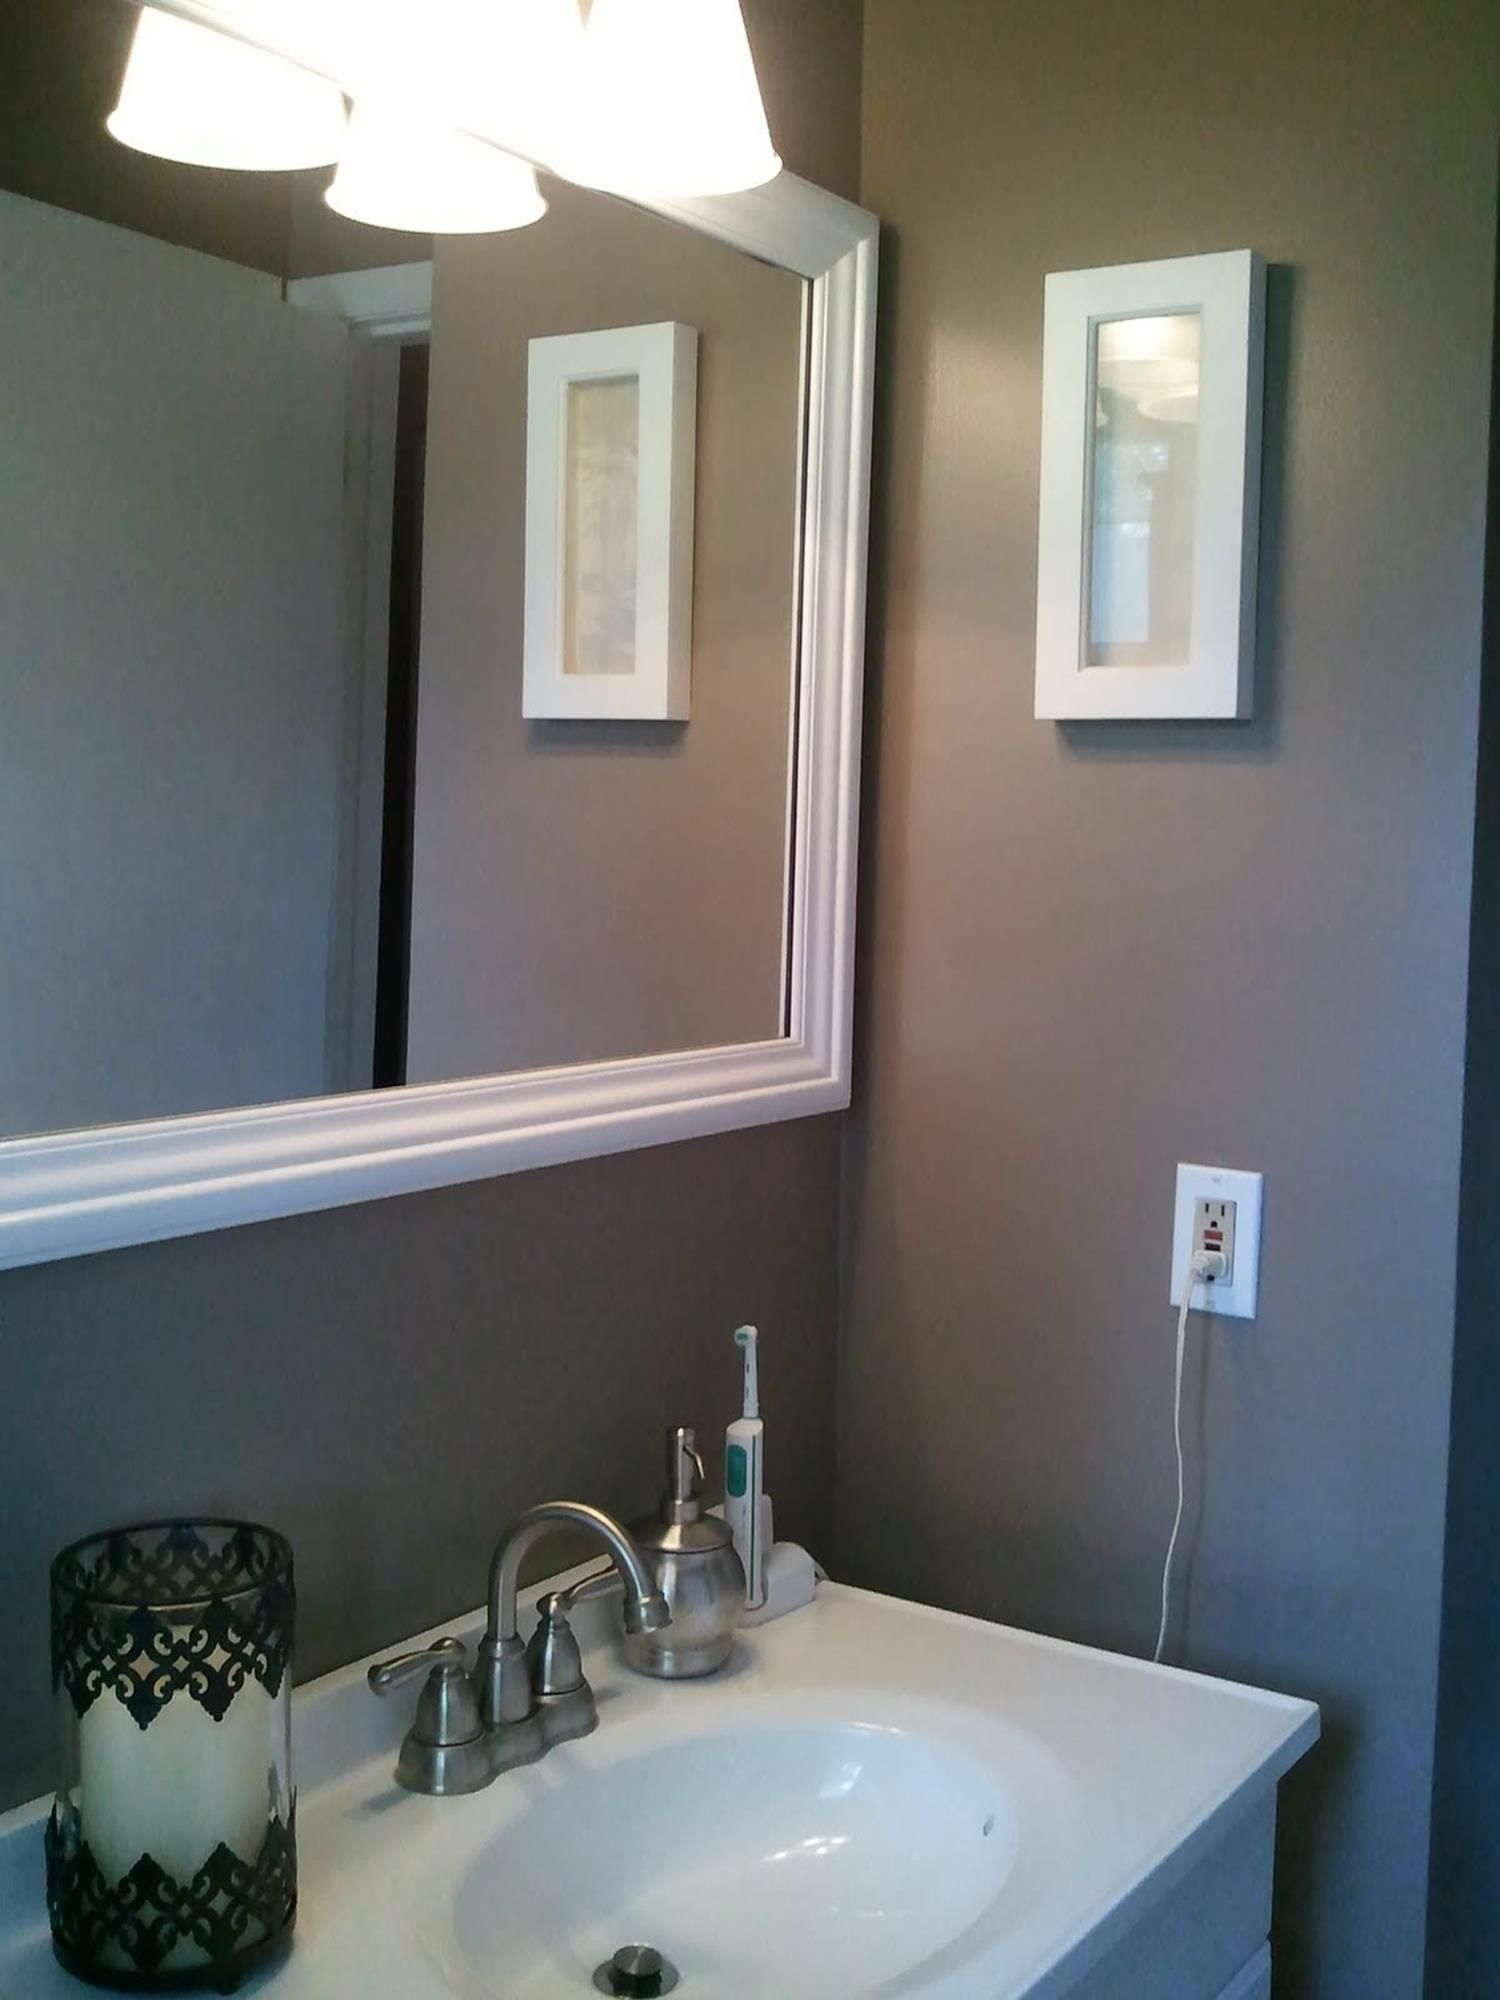 42 Best Paint Colors For Small Bathrooms Your Bathroom Look Clean Decorecord Small Bathroom Colors Best Bathroom Colors Bathroom Color Schemes